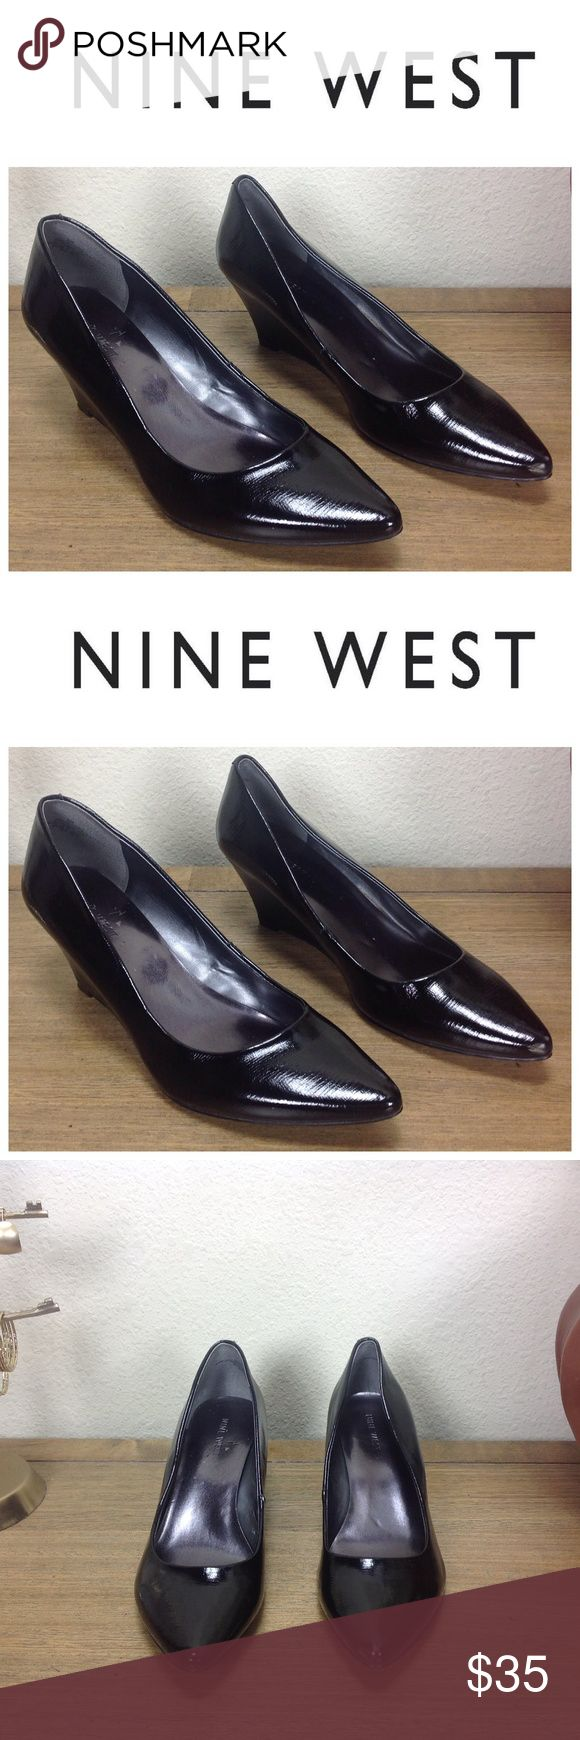 Nine West Black Embossed Patent Leather Wedges Black embossed patent leather pointed wedges that are perfect for any occasion.  Wedge provides comfort and stability that make these shoes great for all day comfort.  In excellent condition with no visible scratches or marks.  Thanks for your interest!  Please checkout the rest of my closet. Nine West Shoes Wedges